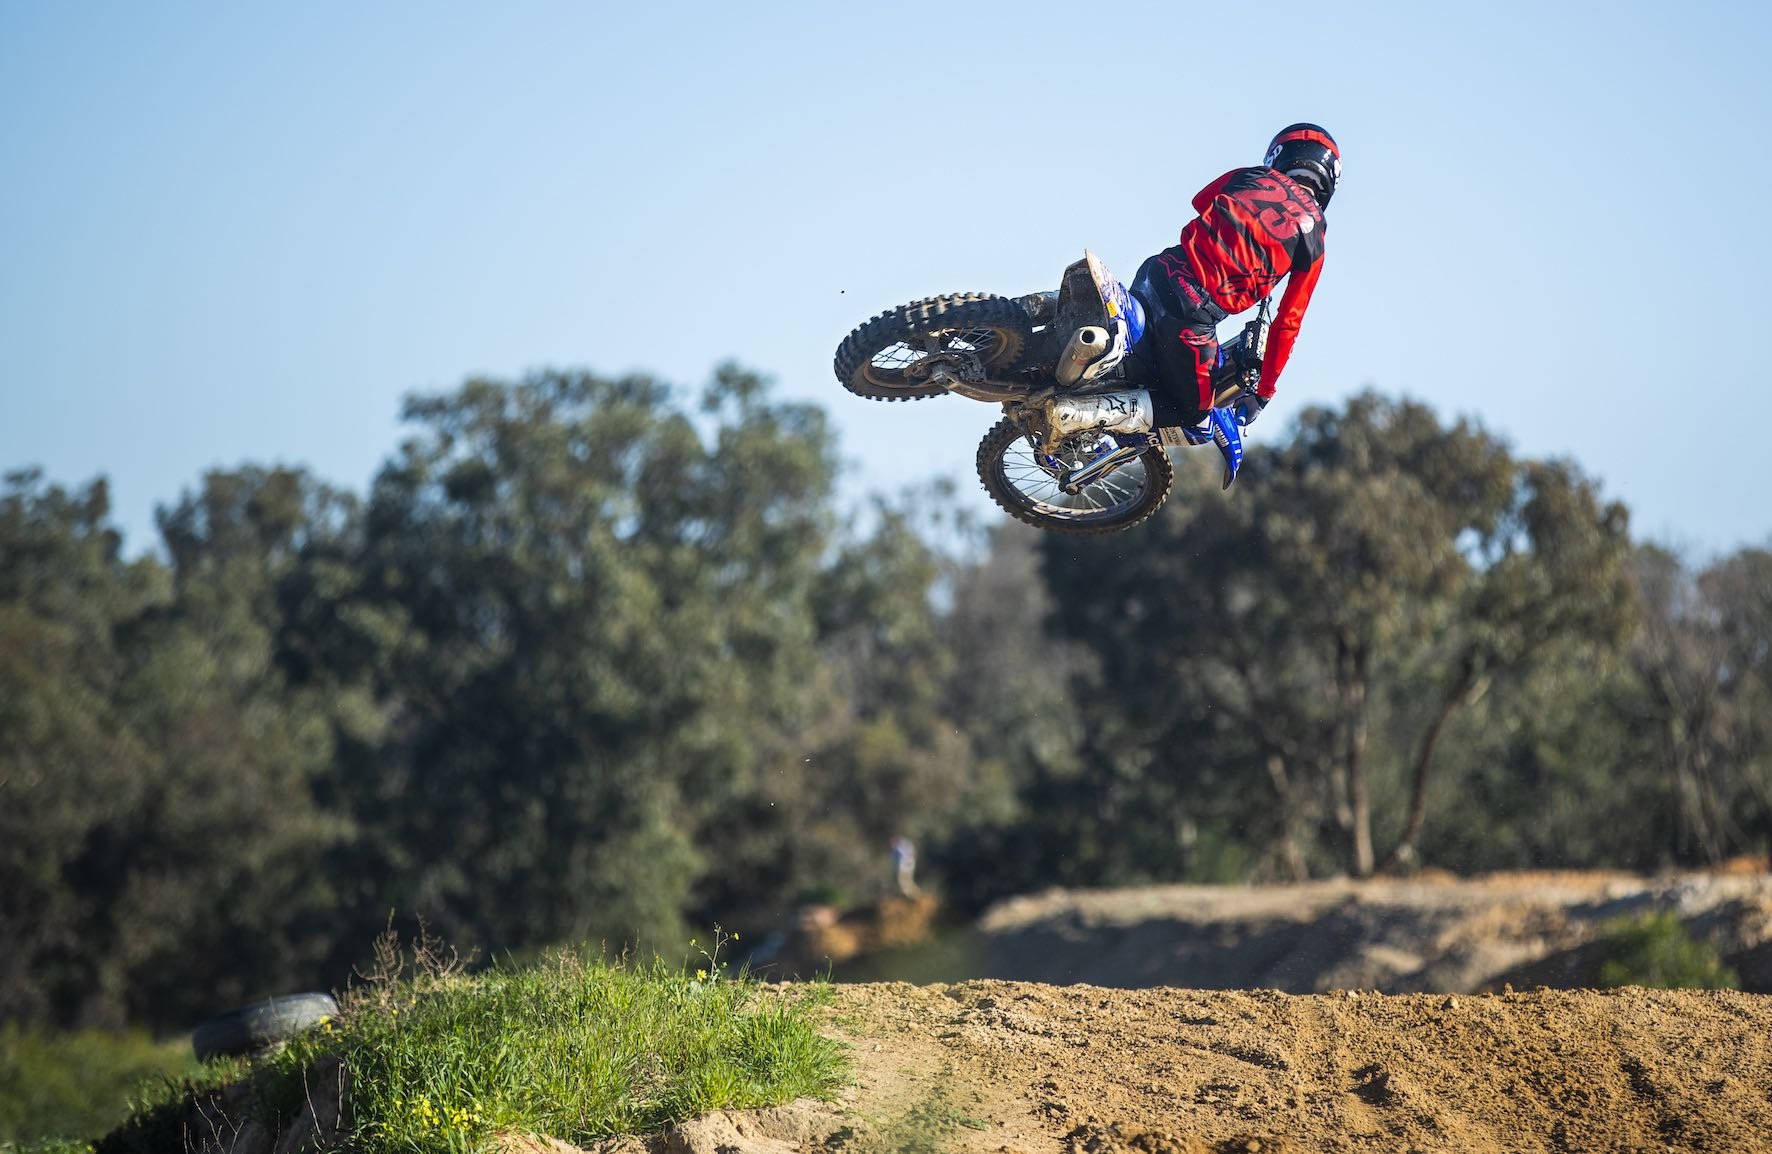 Video feature with motocross racer Anthony Raynard